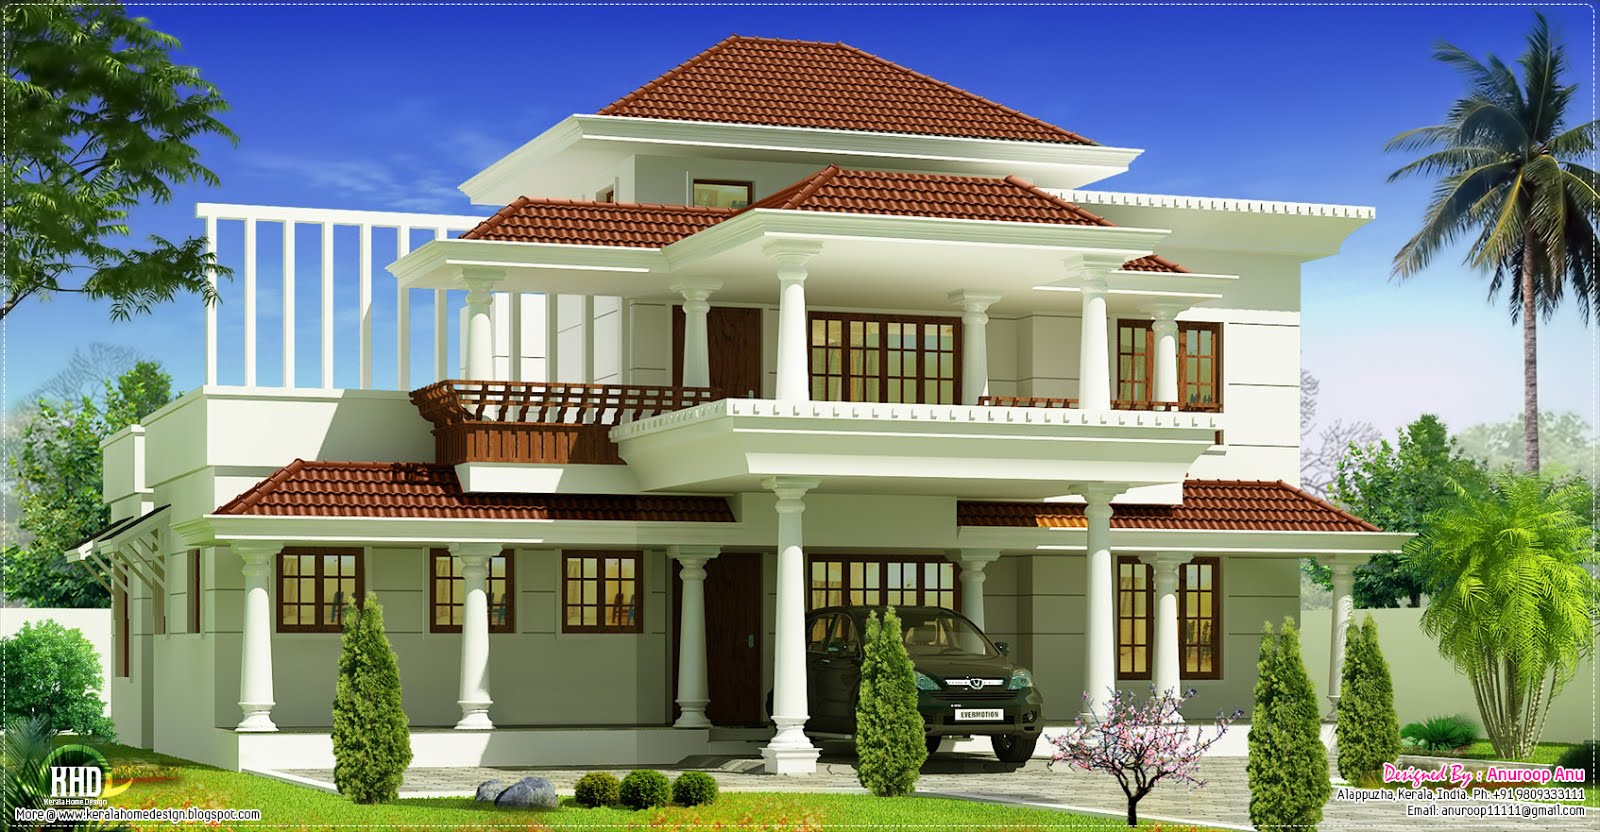 kerala house models houses plans designs ForHome Designs In Kerala